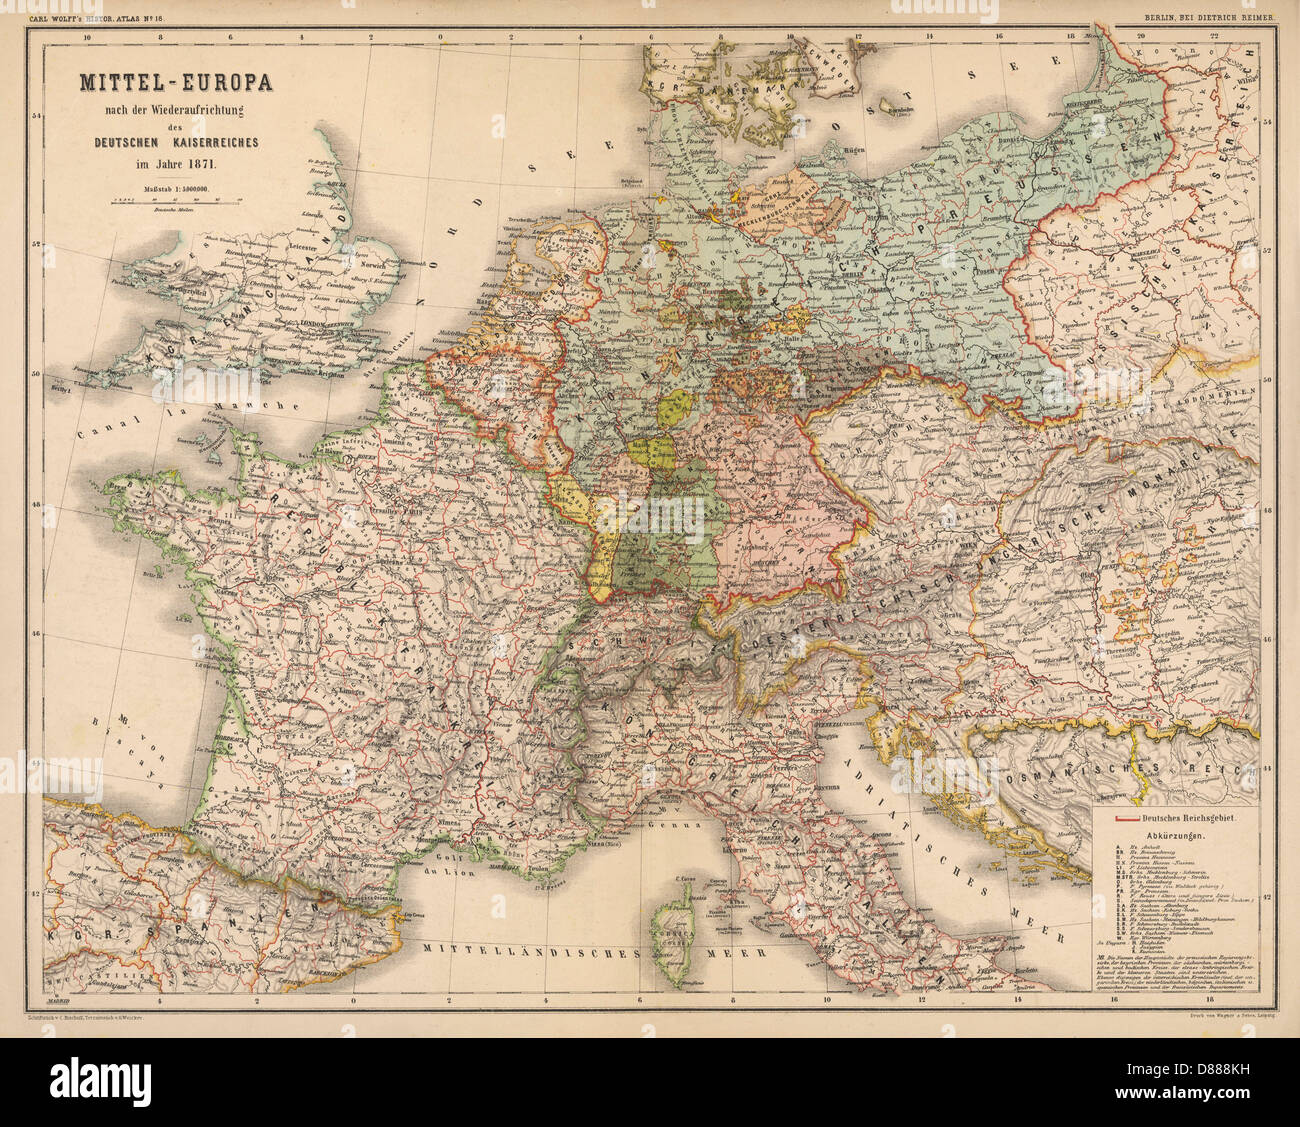 Map Of Europe In 1871.Map Europe Germany 1871 Stock Photo 56730789 Alamy